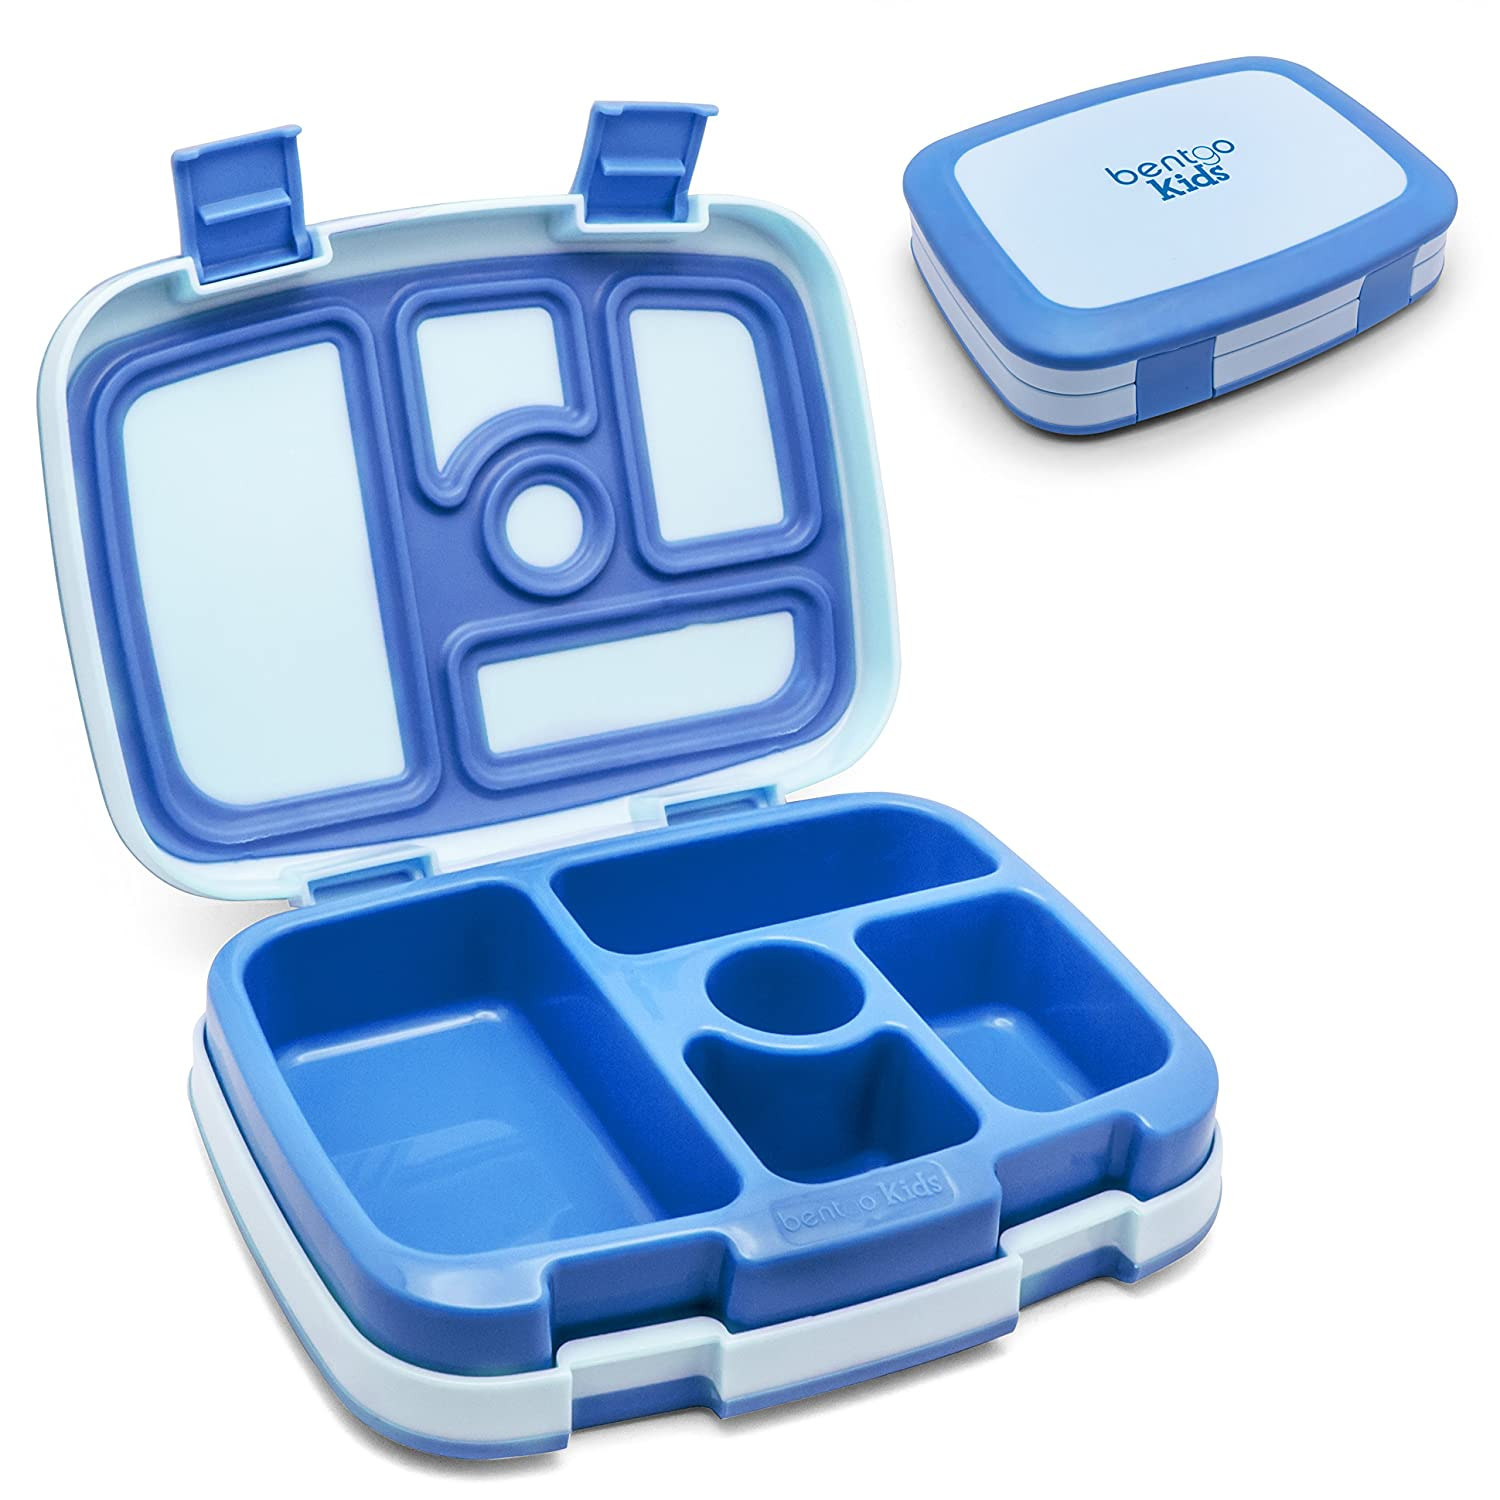 Bento-styled Lunch Solution Offers Durable, Leak-proof, On-the-go Meal and Snack Packing (Blue)